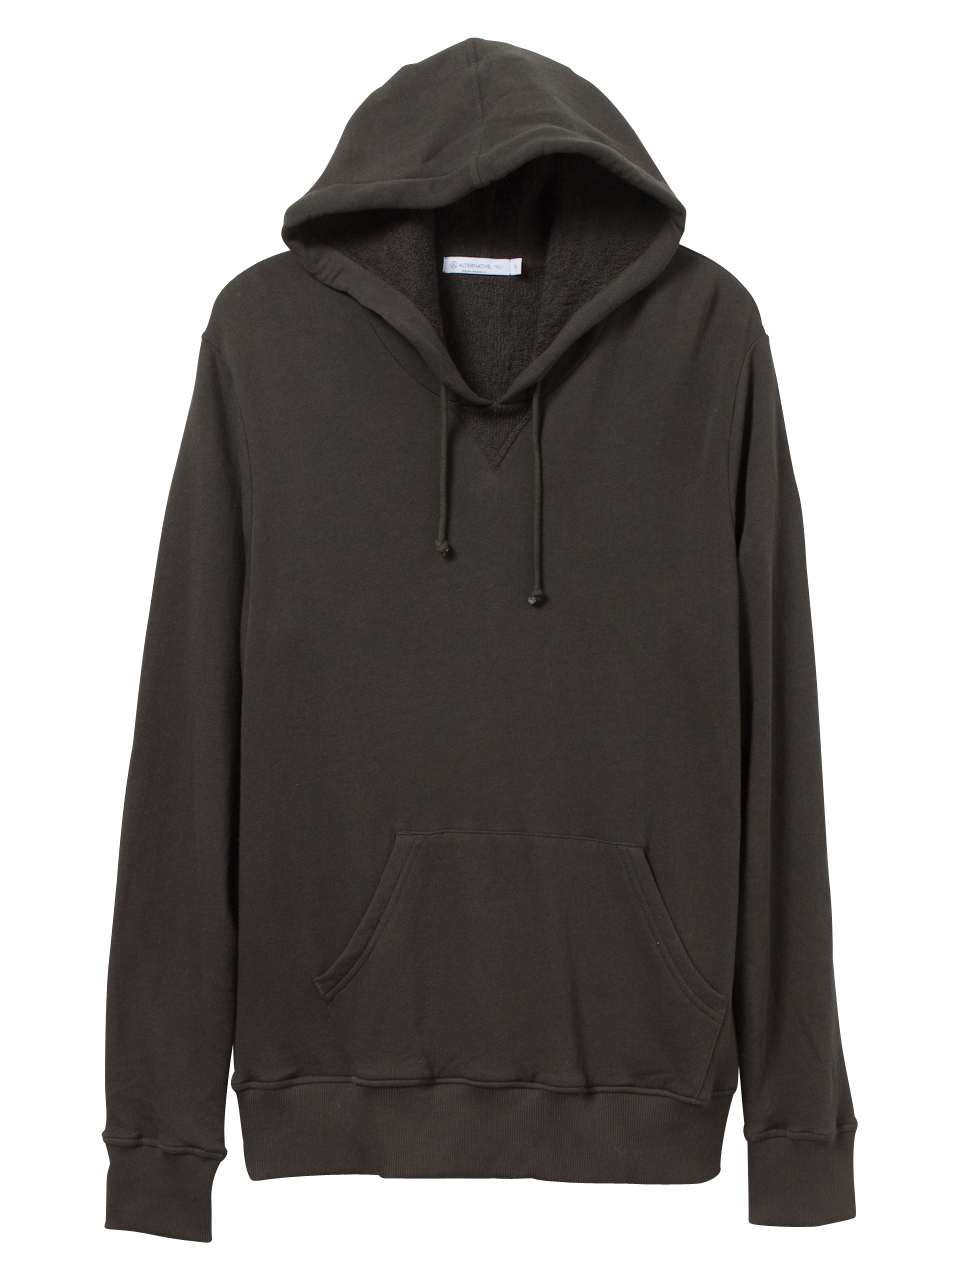 French terry hoodies